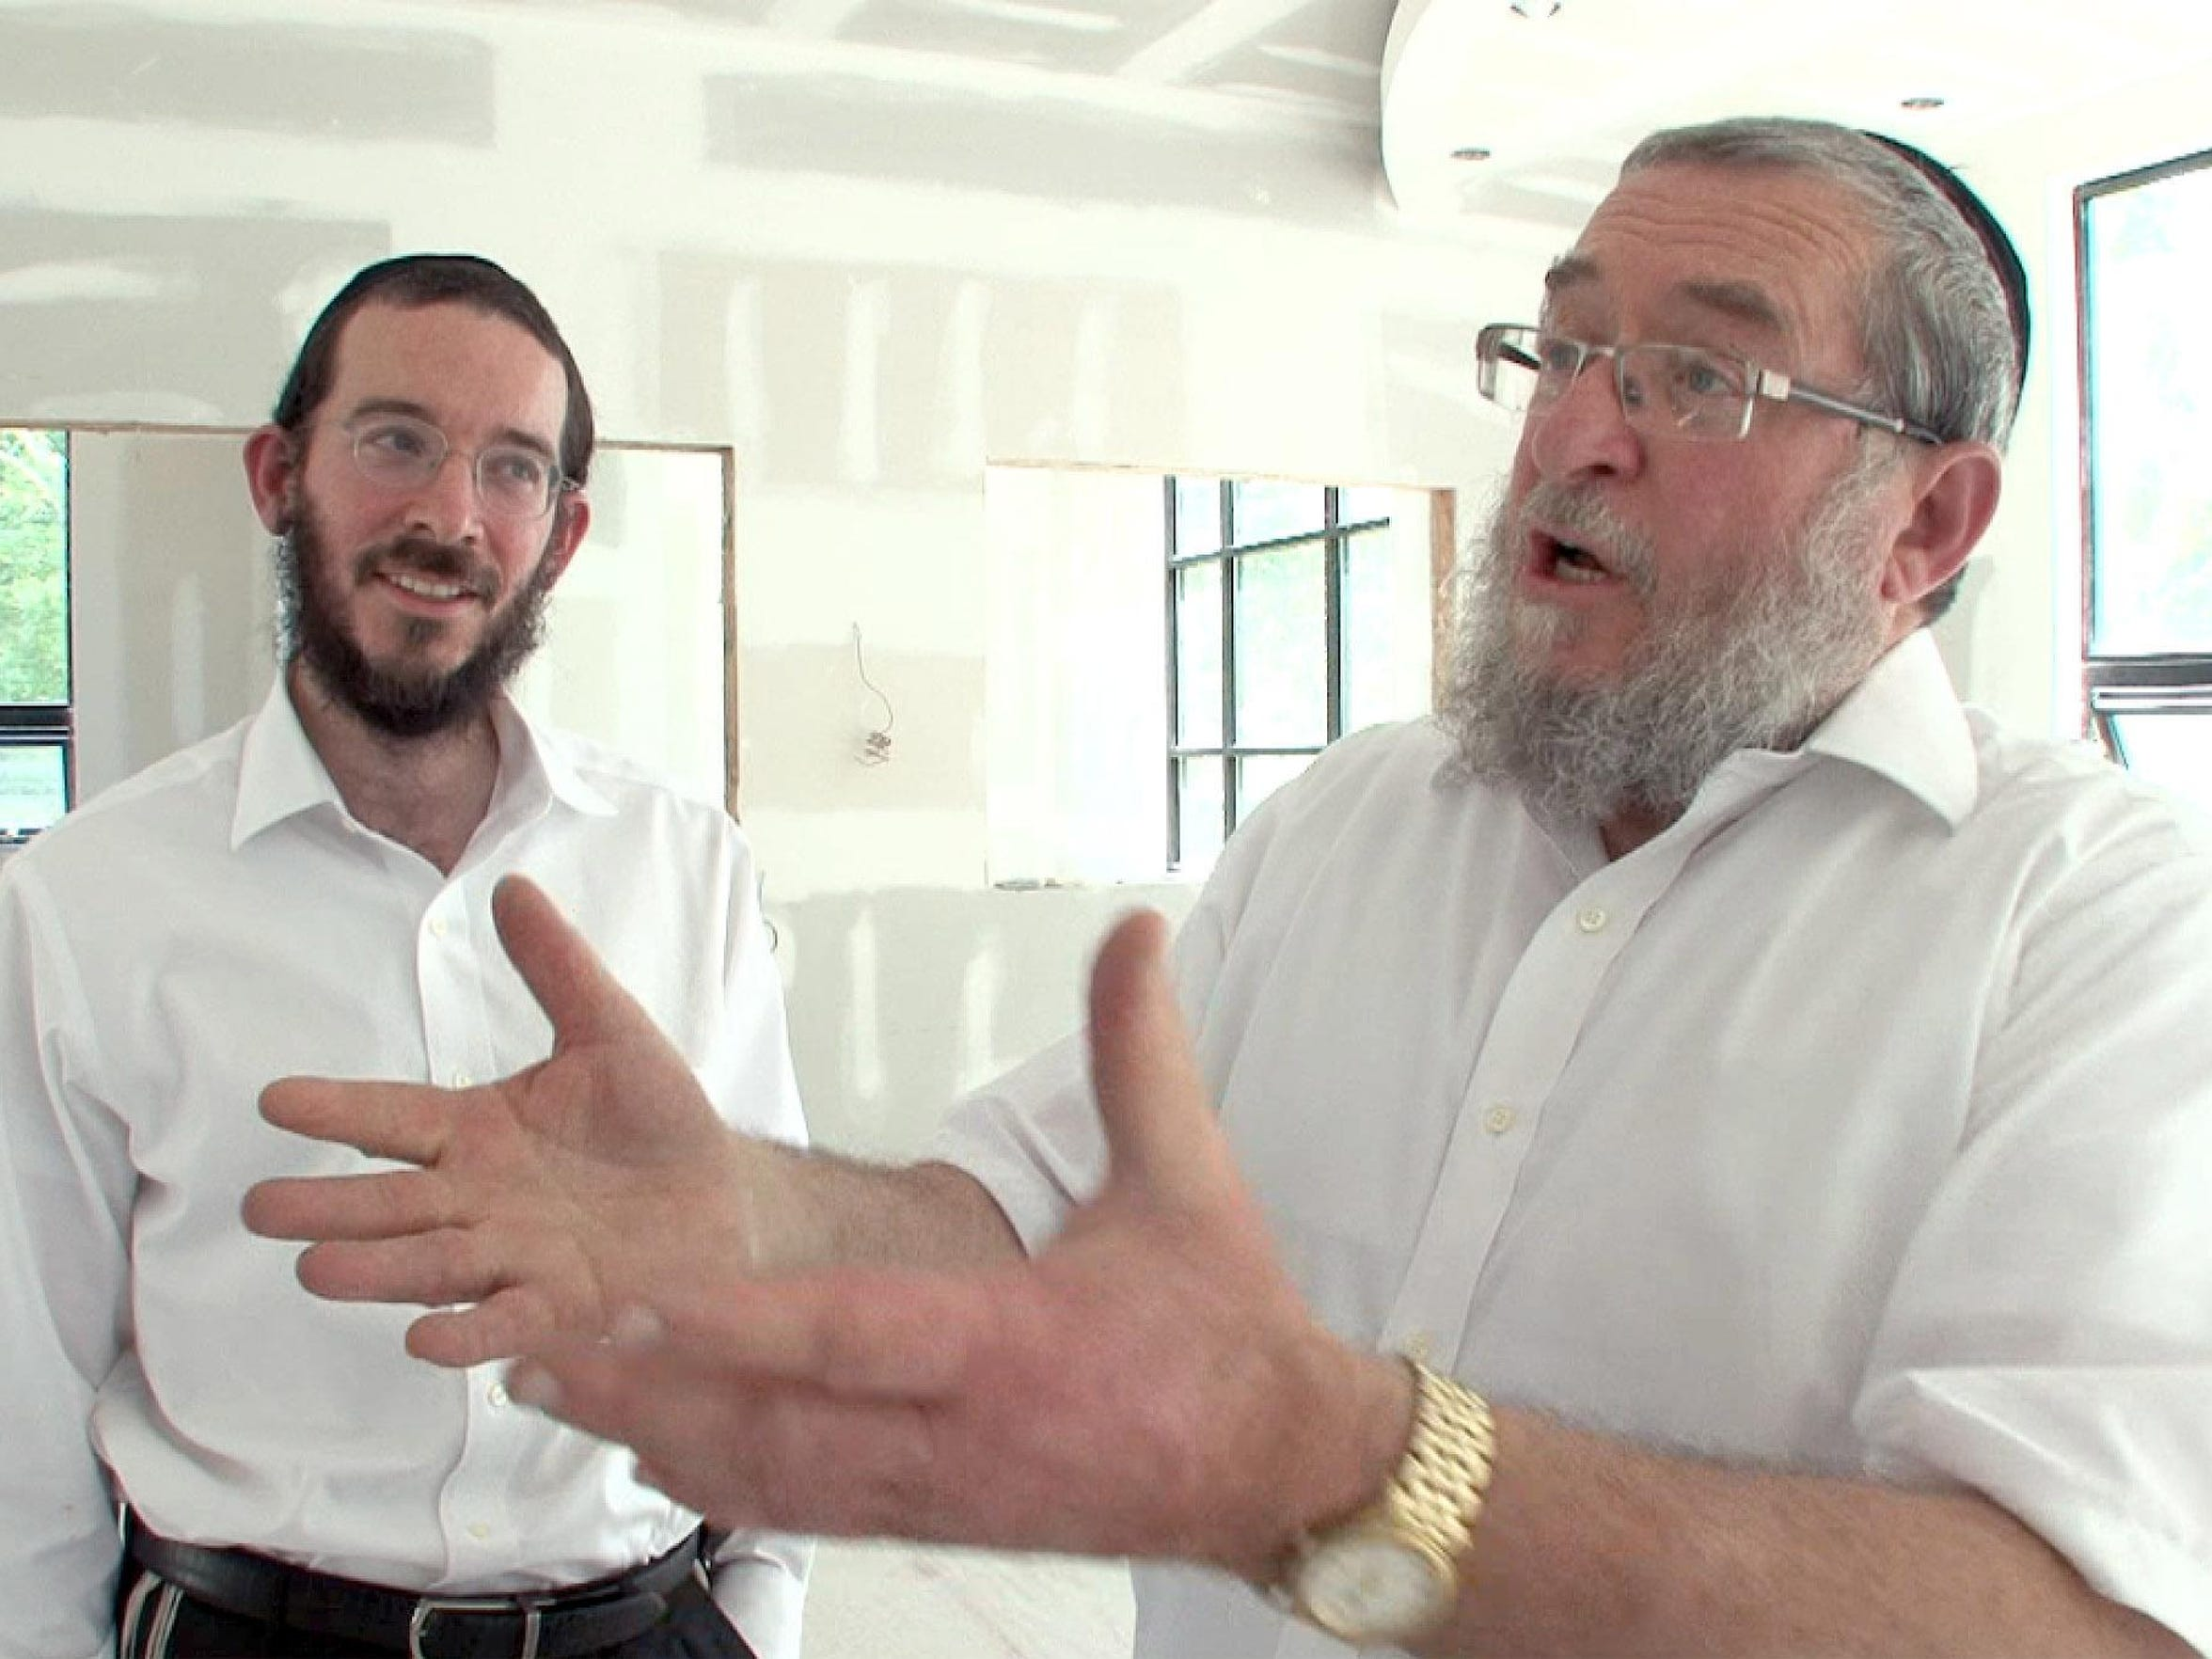 Shaya Ilowitz (right) and his son Sol Ilowitz are shown